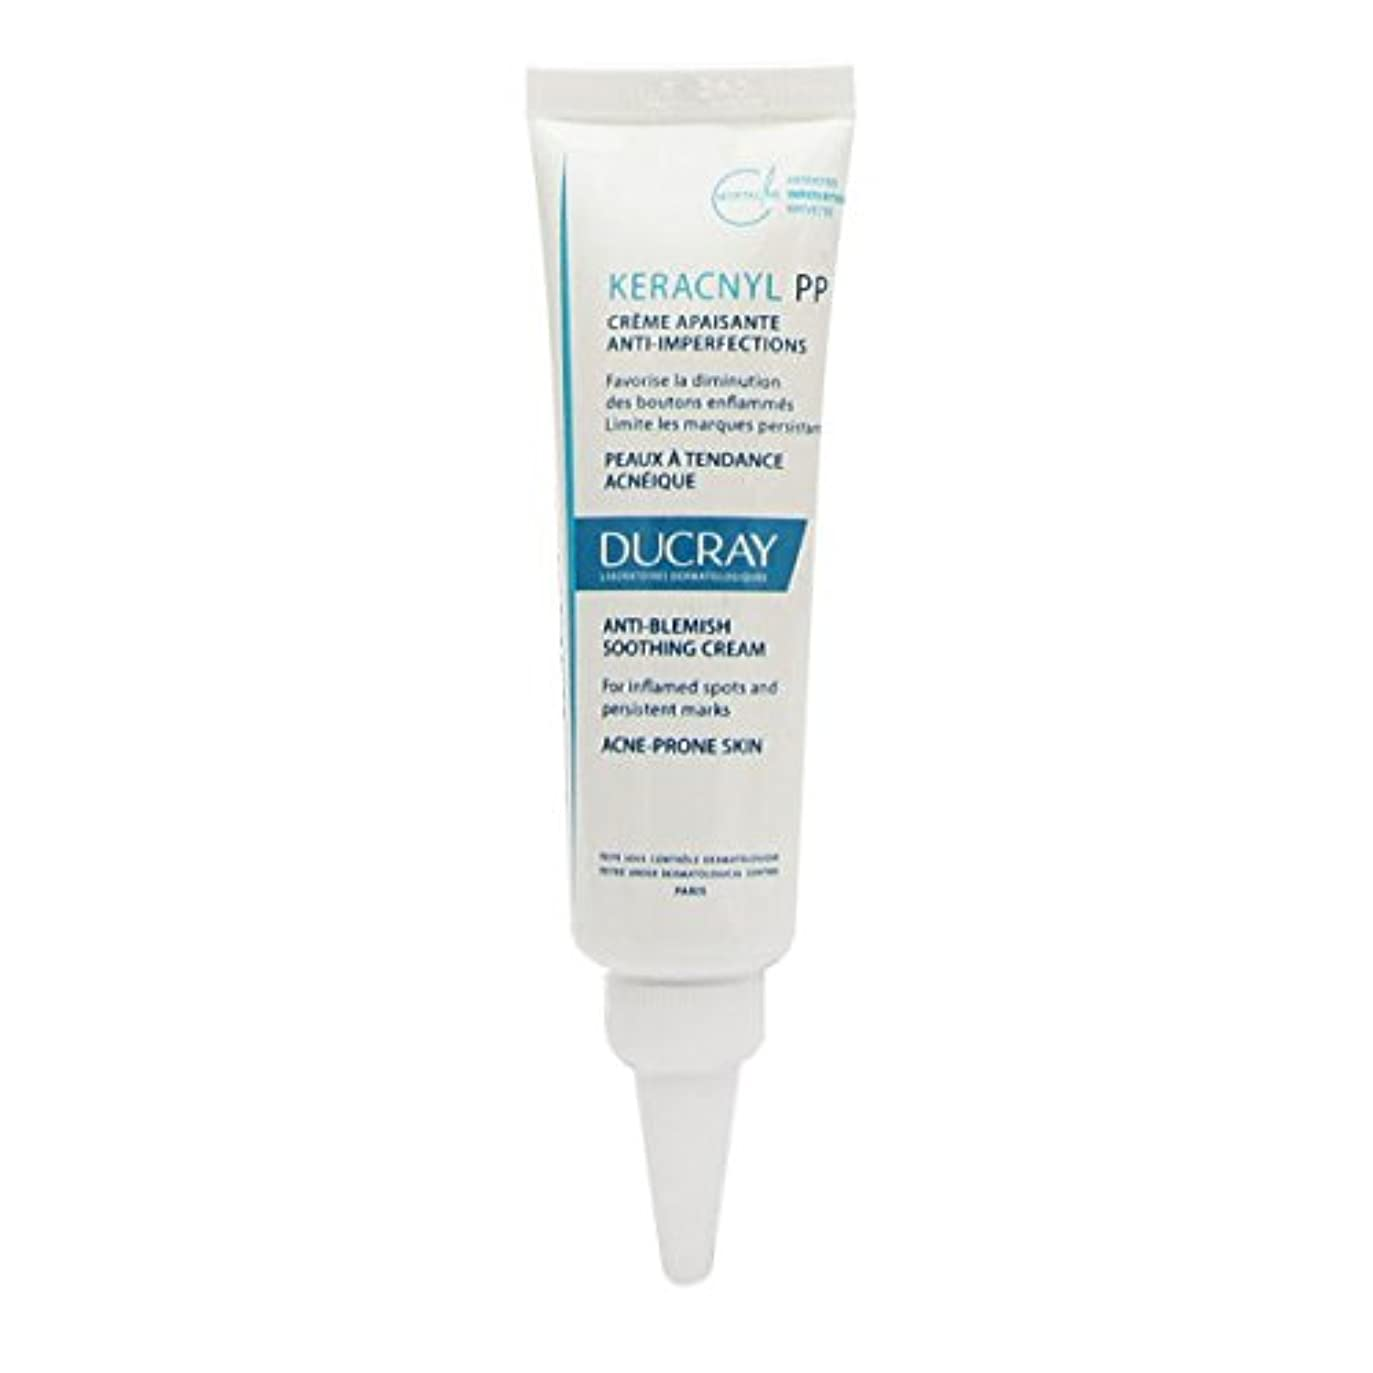 消毒するオンス論理Ducray Keracnyl Pp Anti-blemish Soothing Care 30ml [並行輸入品]